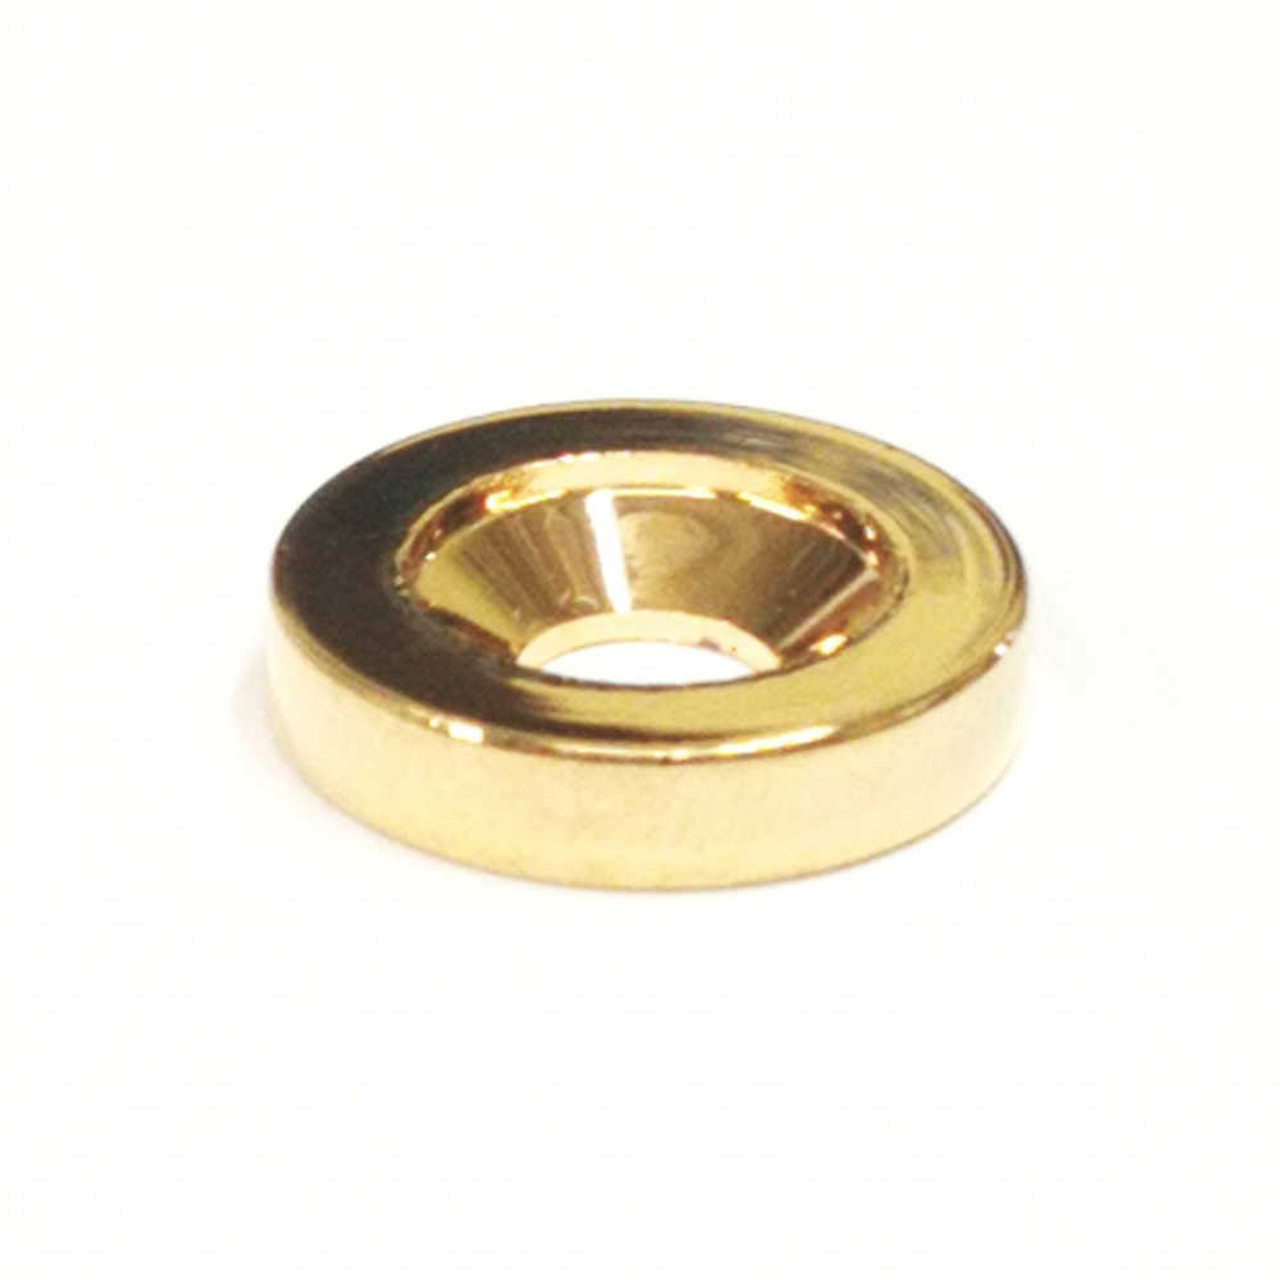 Neck Joint Bushings - Gold